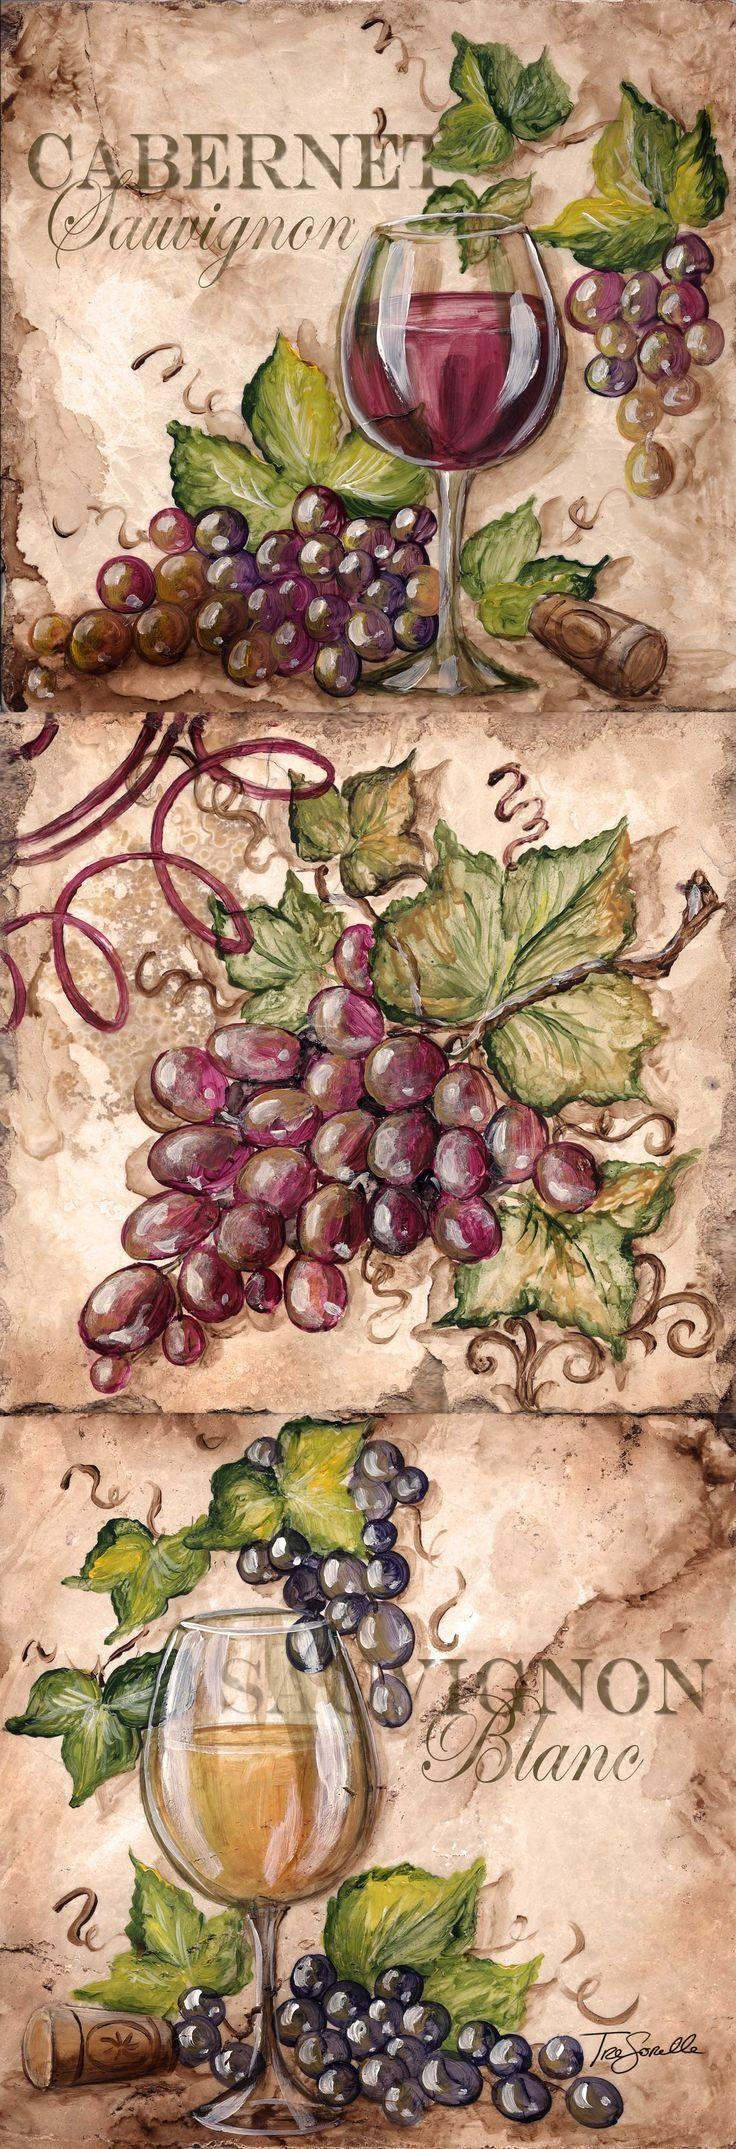 141 Best Wine & Olive Images On Pinterest | Kitchen, Pictures And Throughout Grape Colour Wall Art (Image 2 of 20)